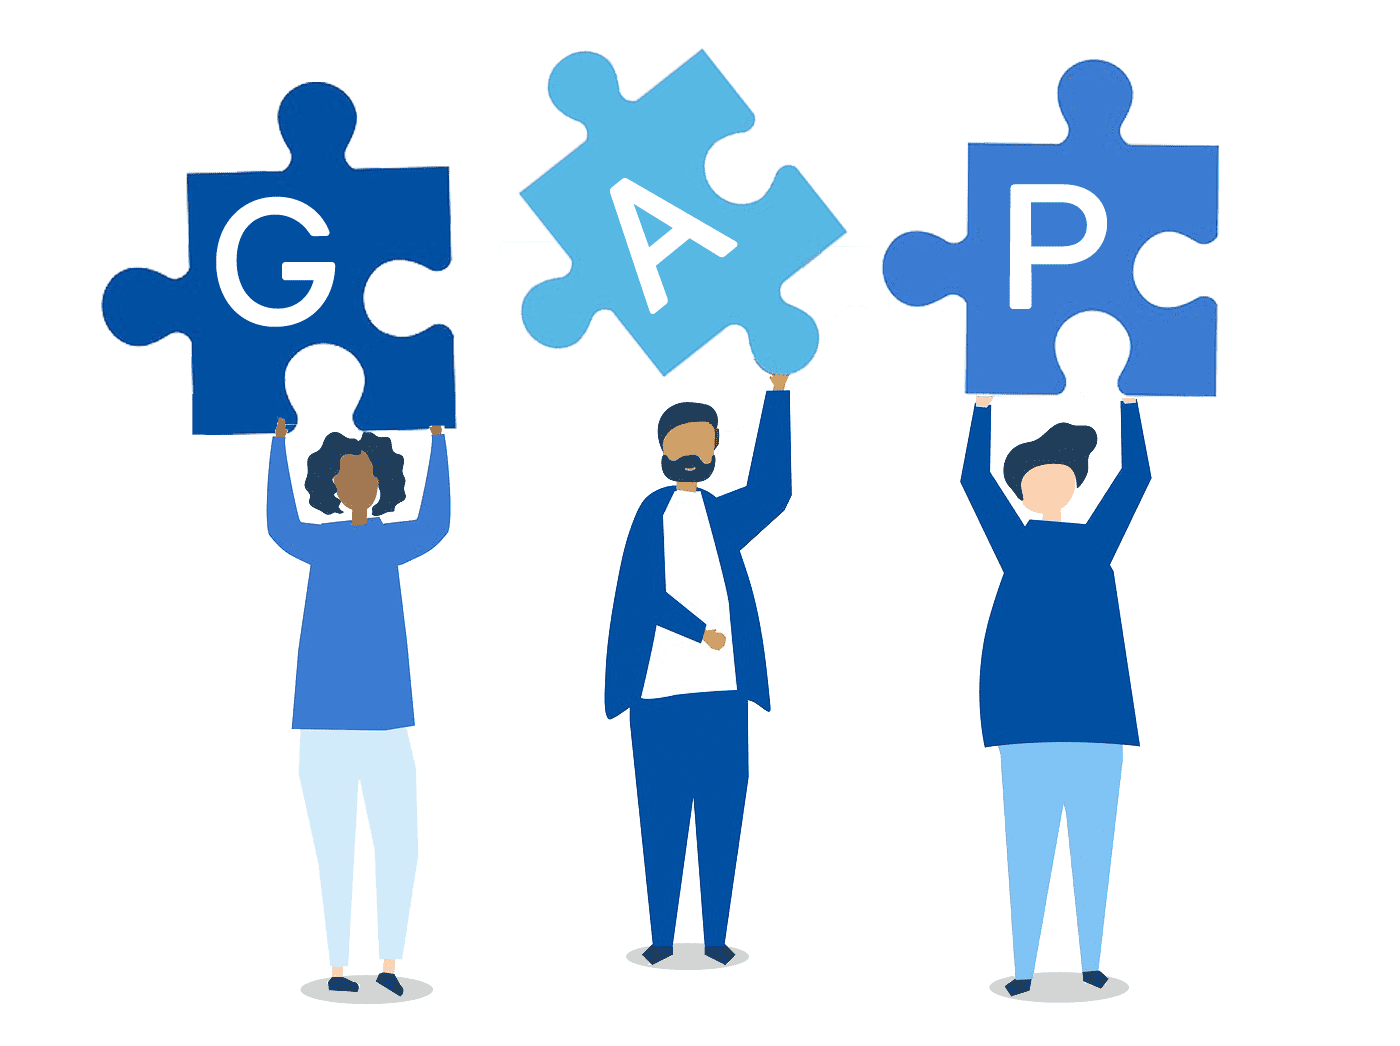 medical id broker services gap cover comparisons people with puzzle pieces